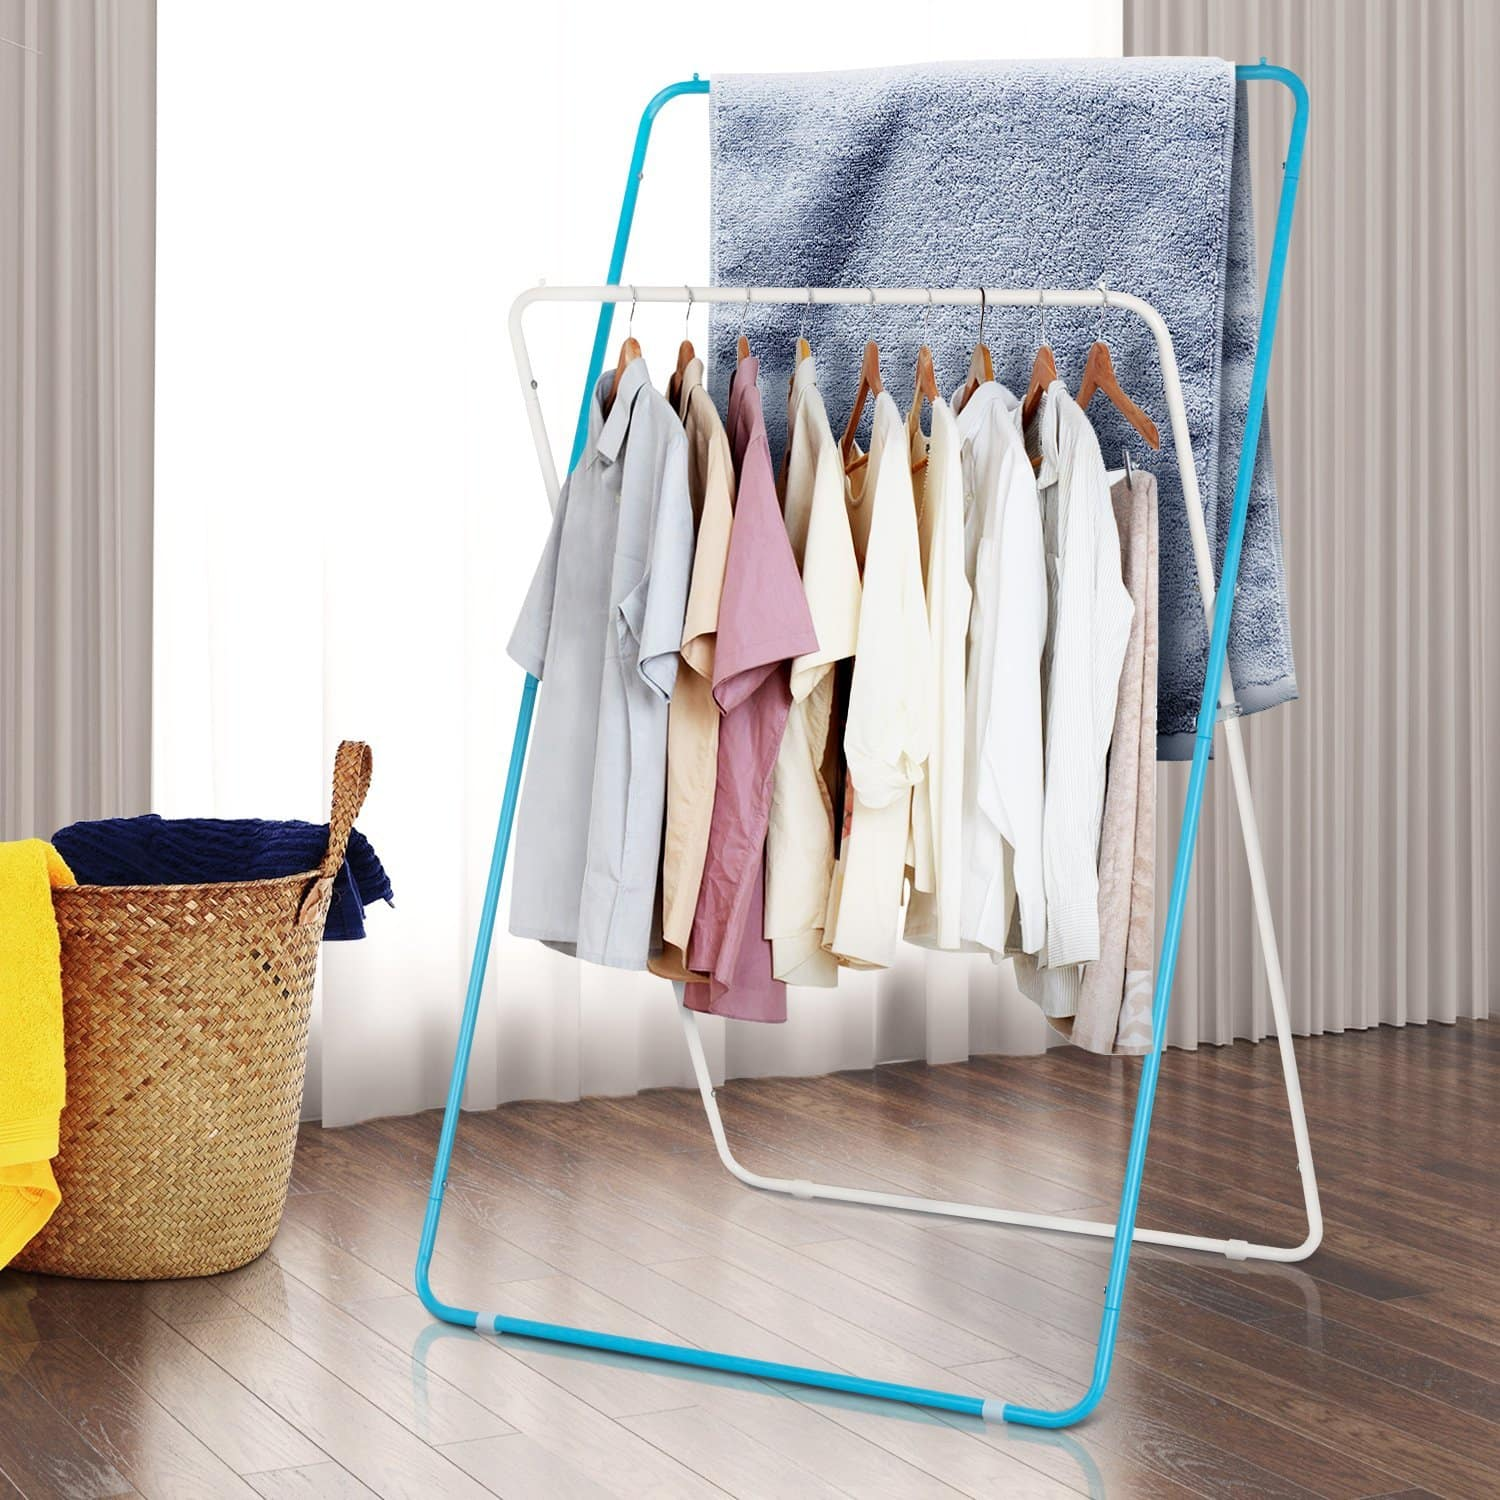 Foldable Clothes Drying Rack Light-weight Laundry Rack Space Saving Garment Rack - $24.83 +FS on amazon